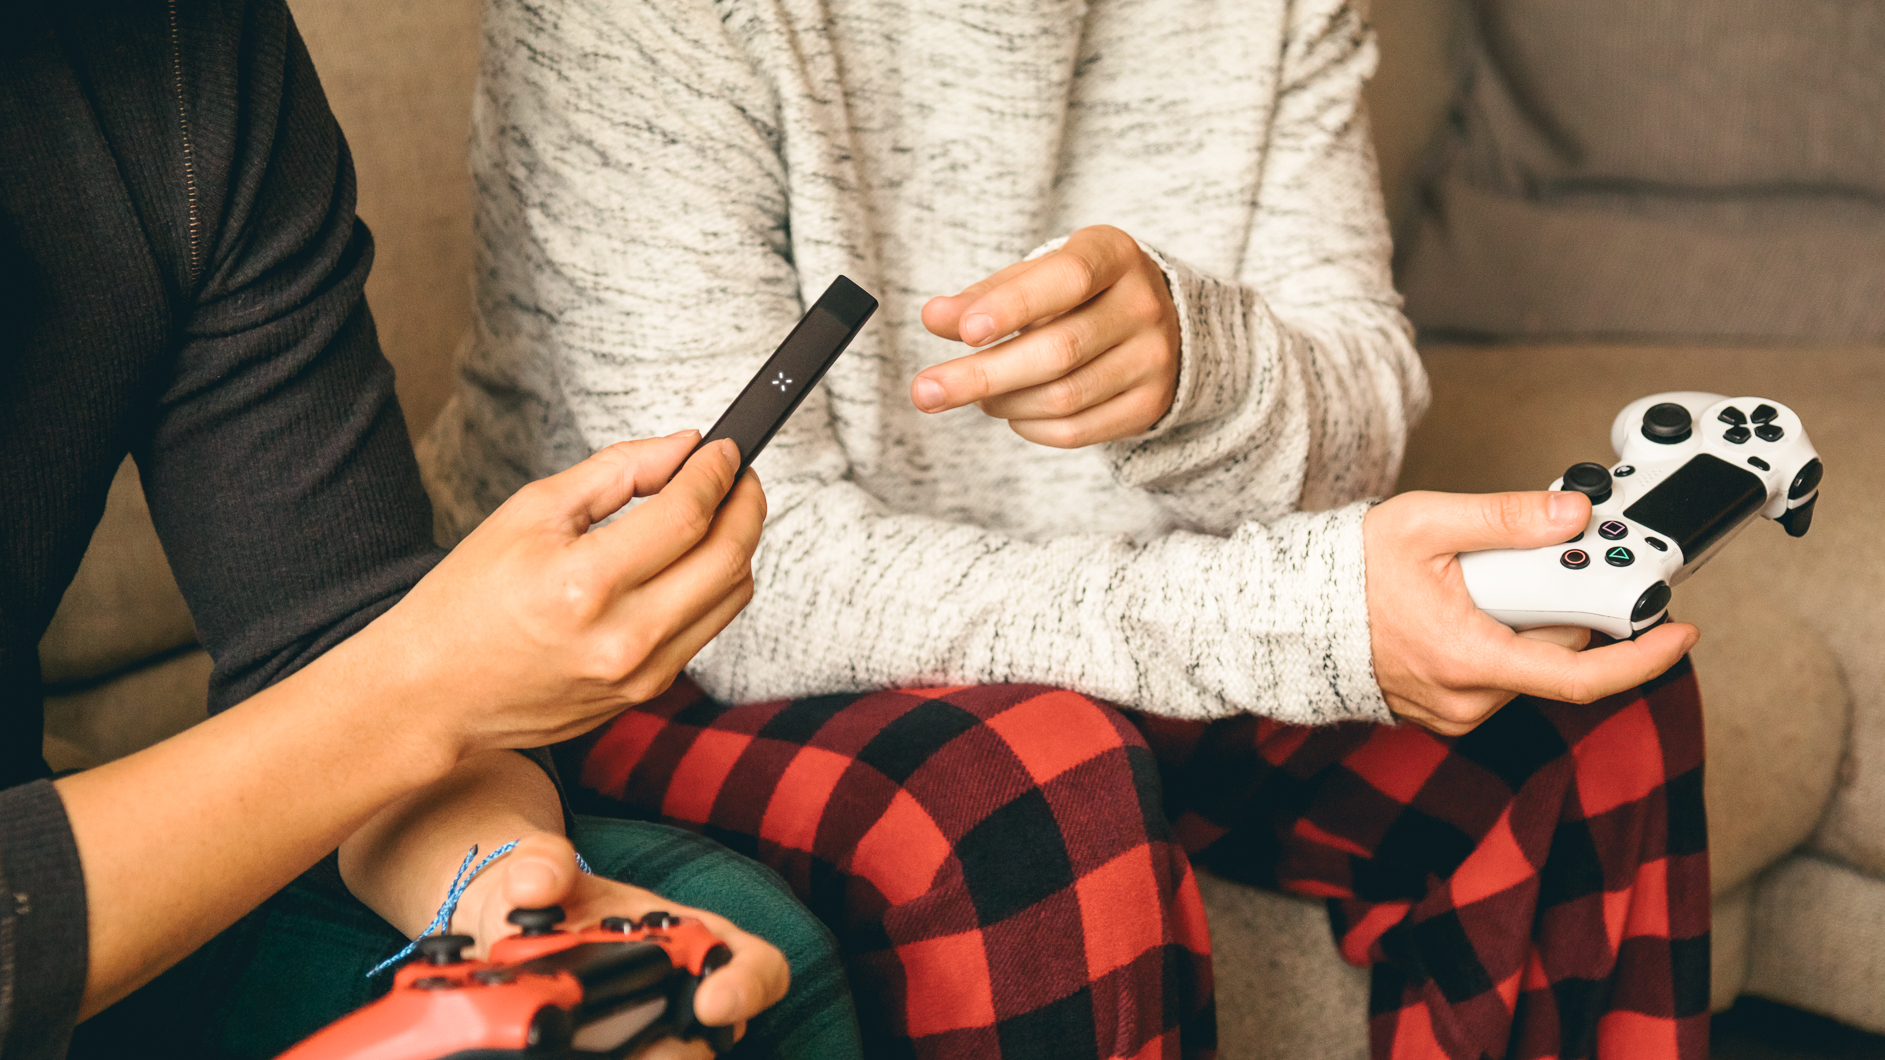 Image of two guys sharing a PAX Era marijuana vaporizer as they sit on the couch playing video games.